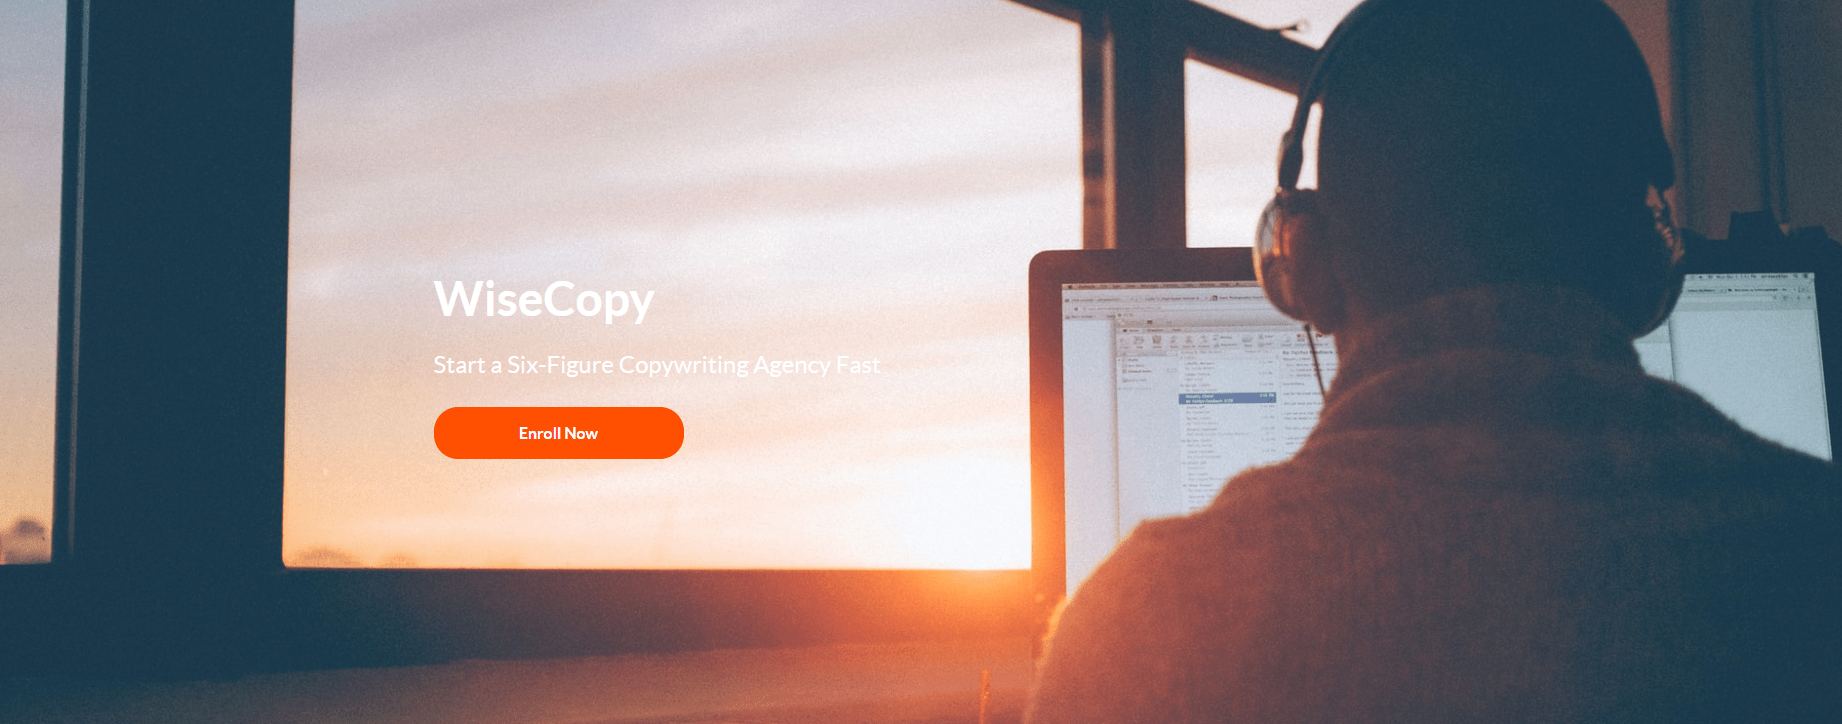 WiseCopy sales page 1